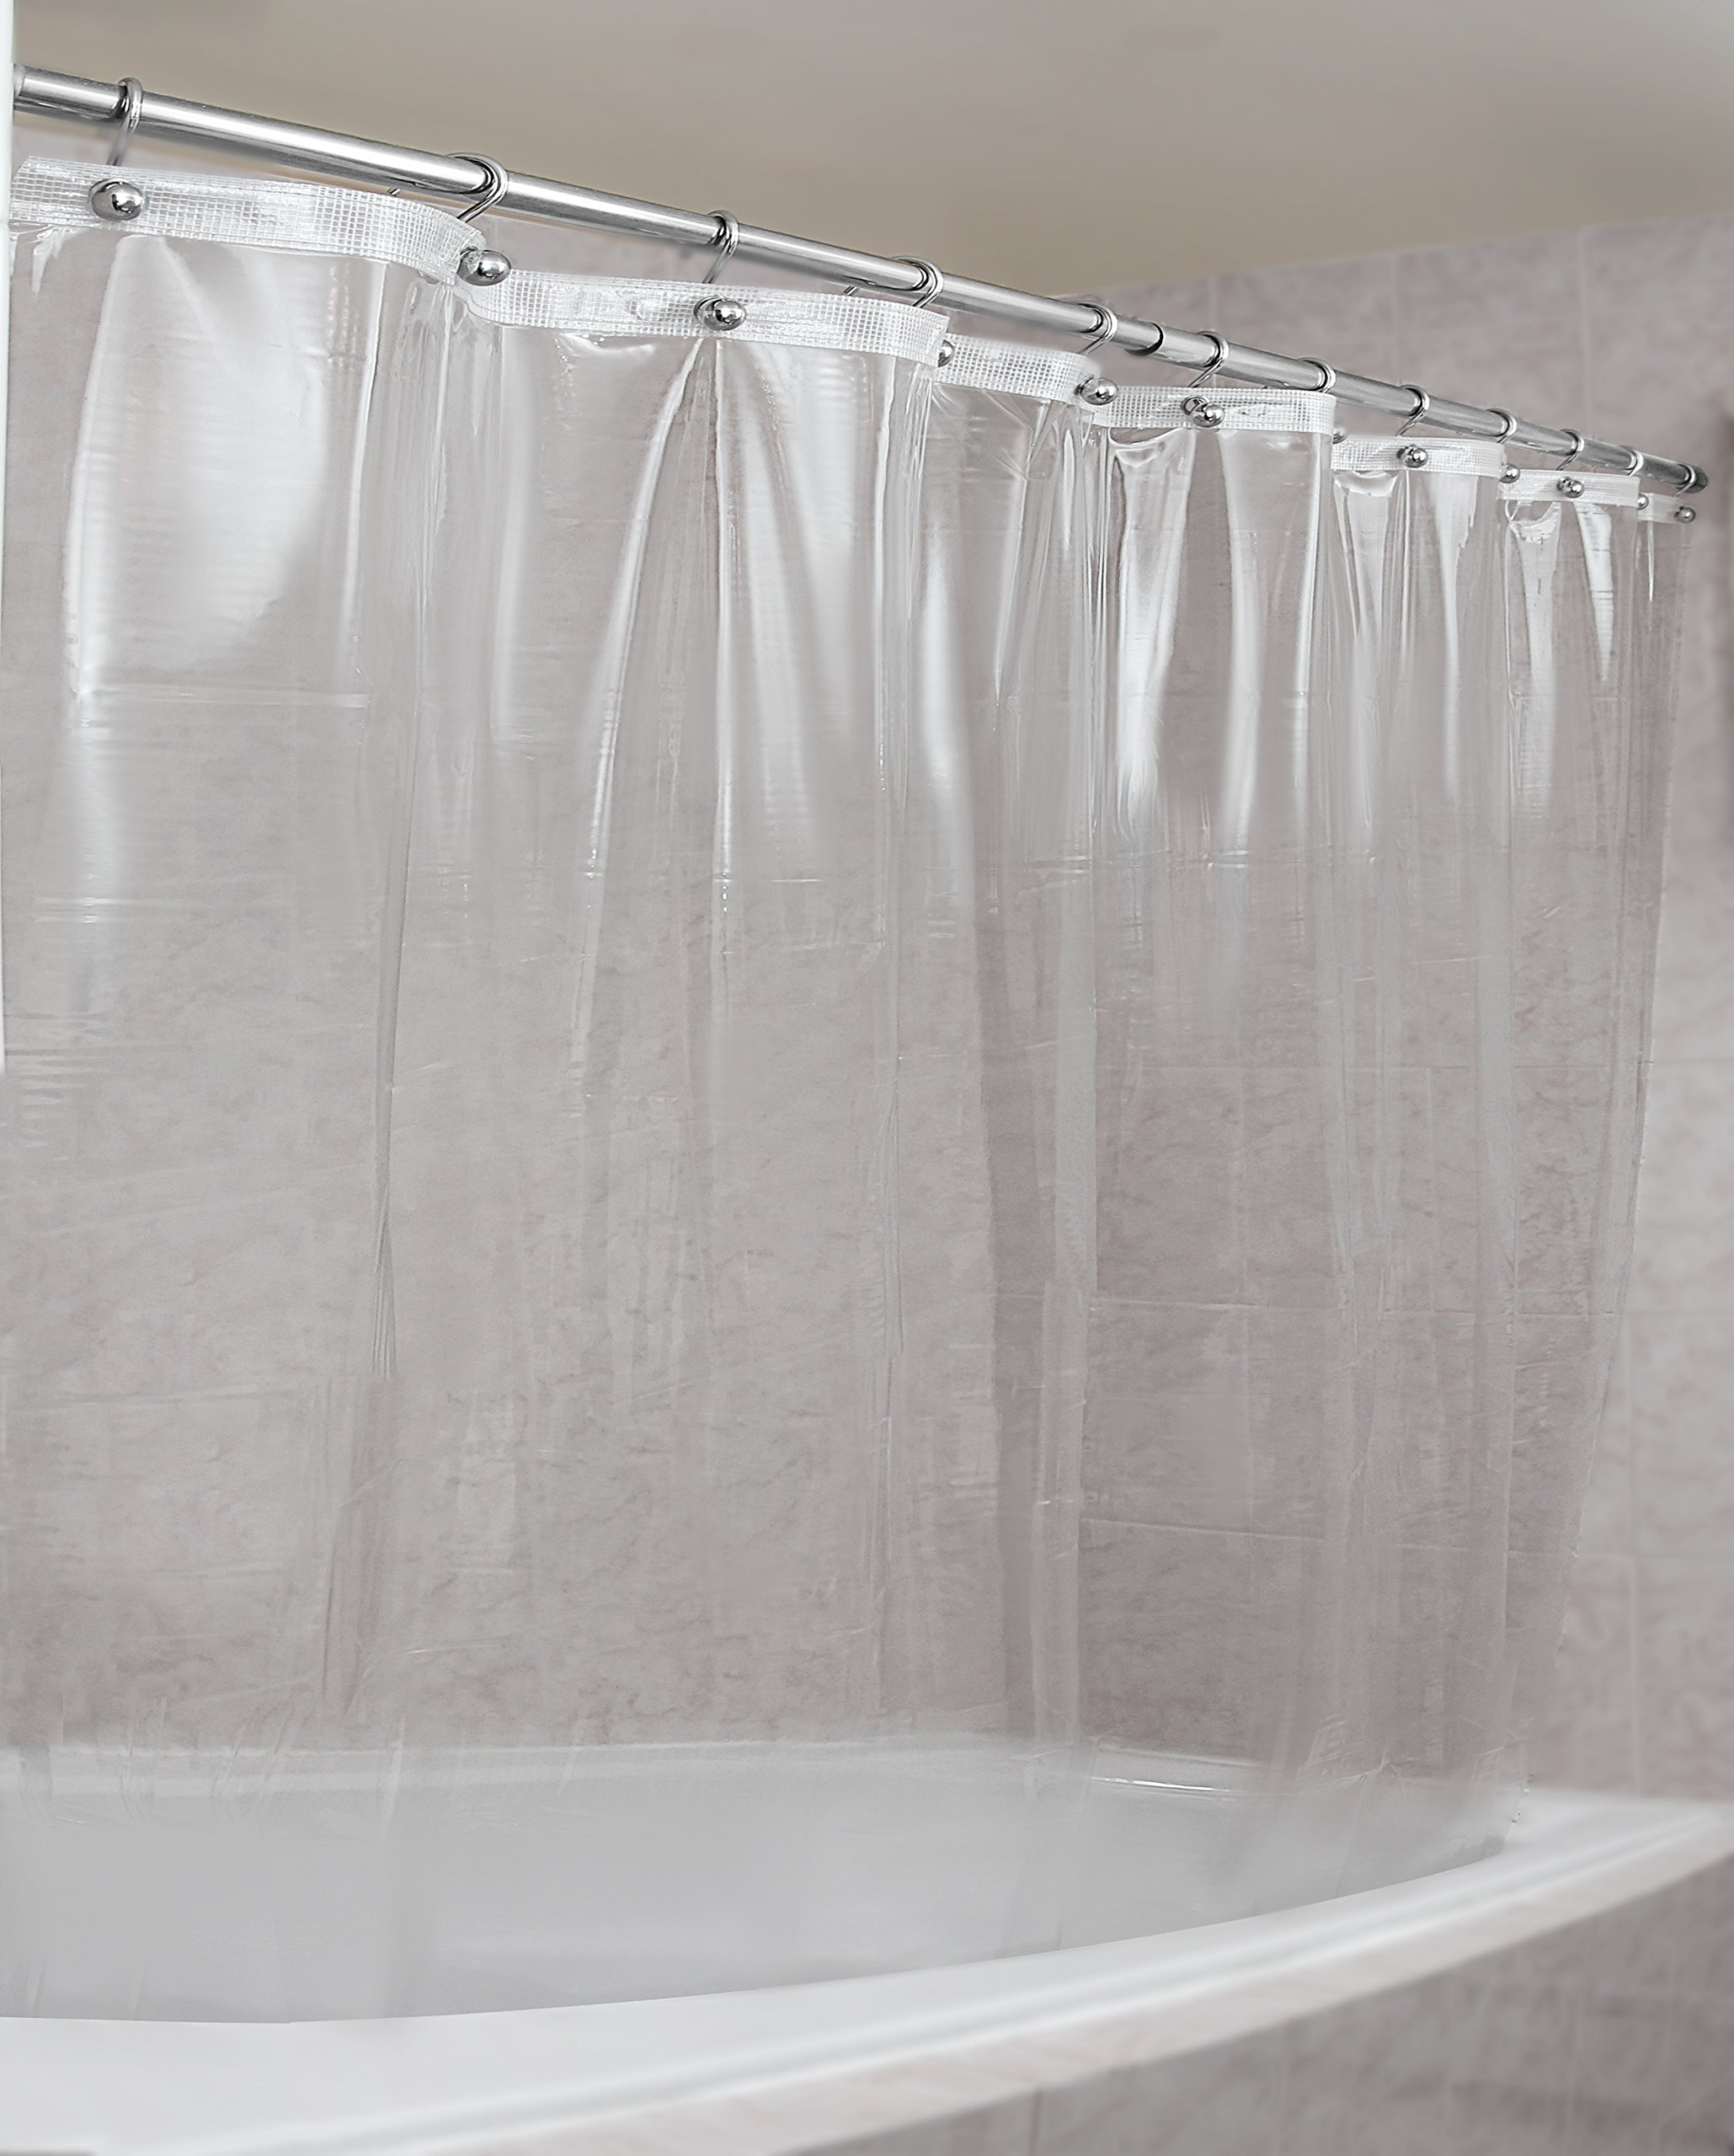 Epica MarketEpica Strongest Mildew Resistant Shower Curtain Liner On The Market 72 X Clear